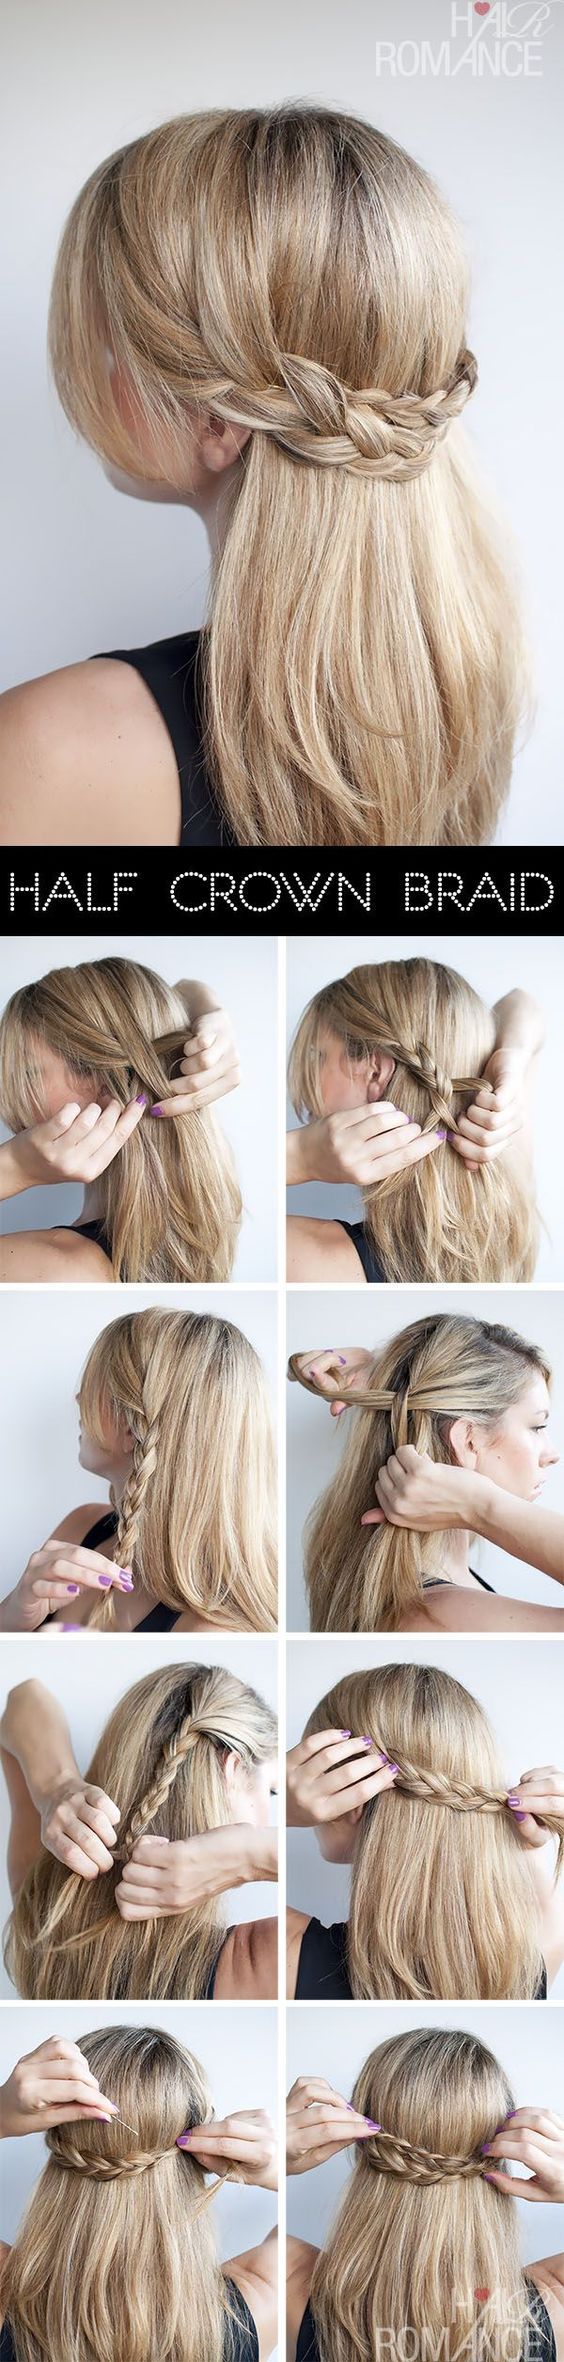 Half crown braid tutorial pretty for every day clothes uploaded